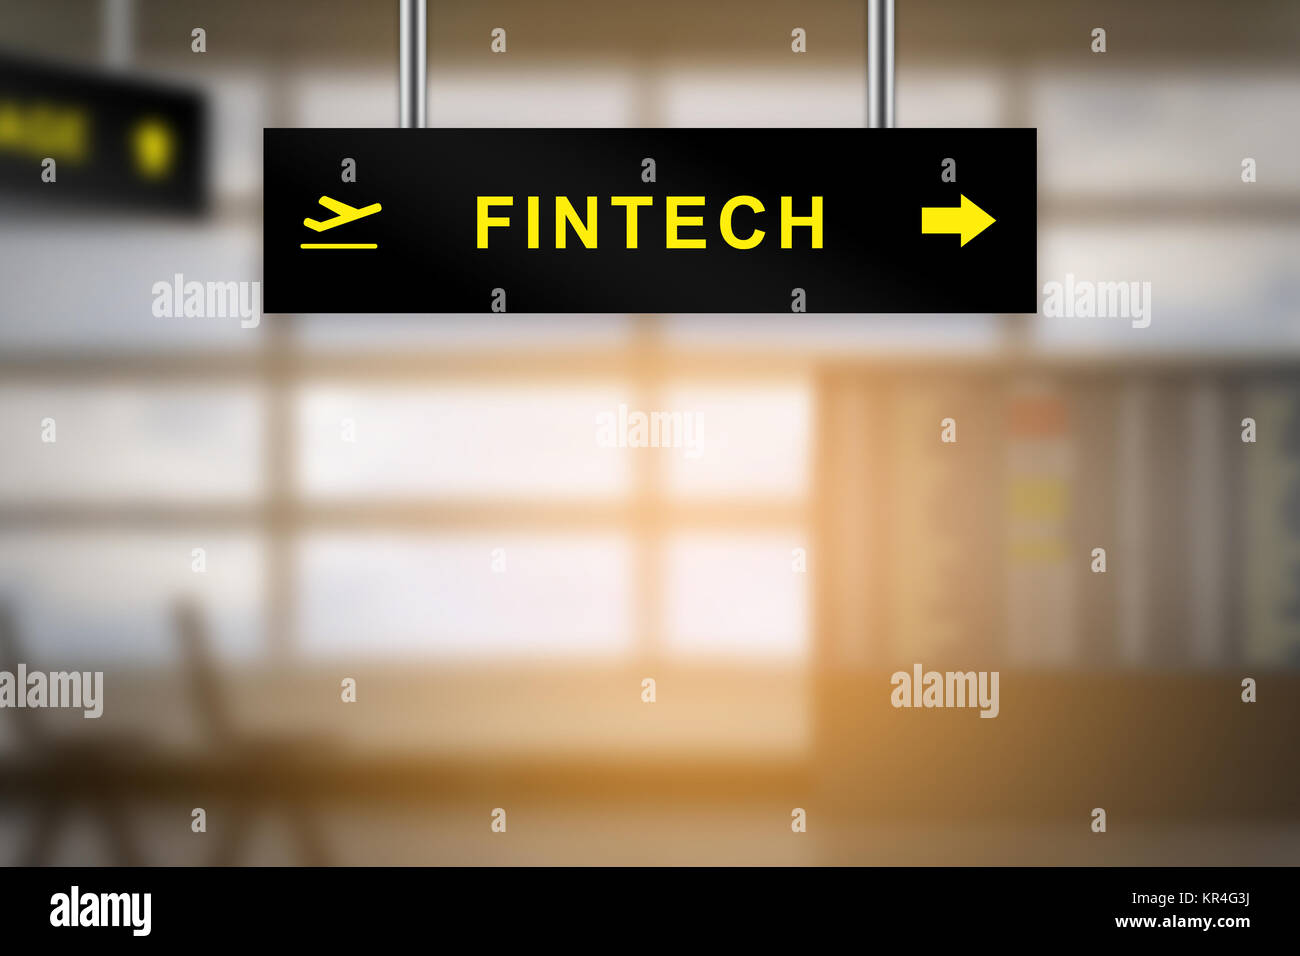 FINTECH or financial technology on airport sign board - Stock Image